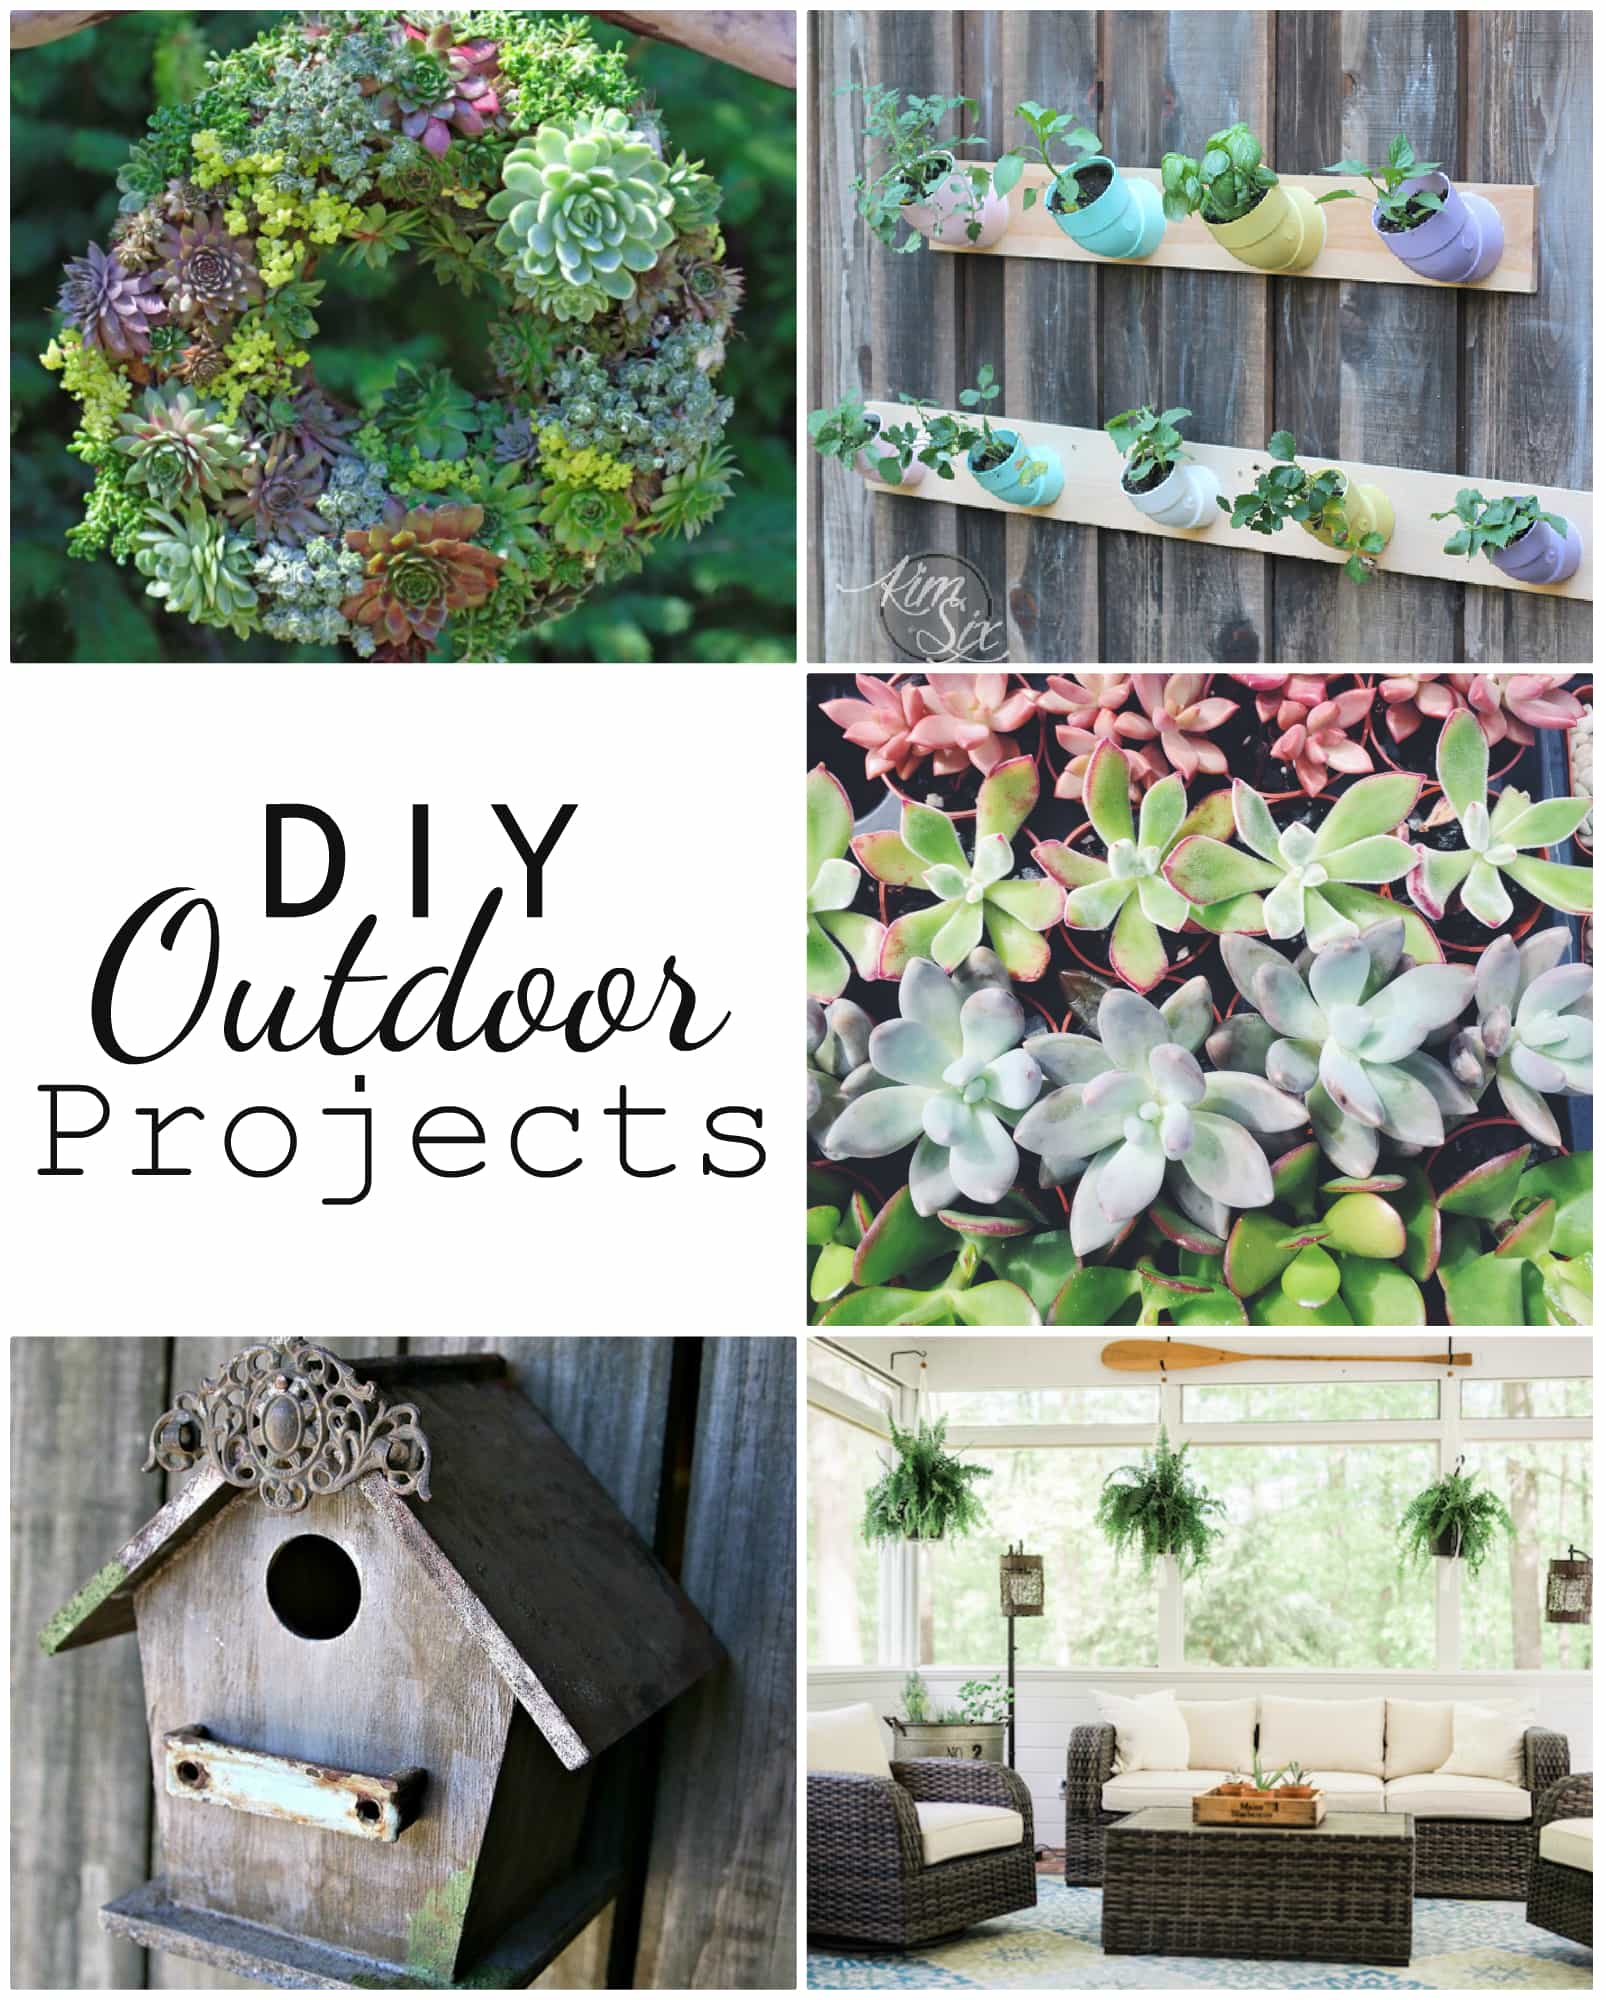 So many creative ideas for outdoor and garden projects!